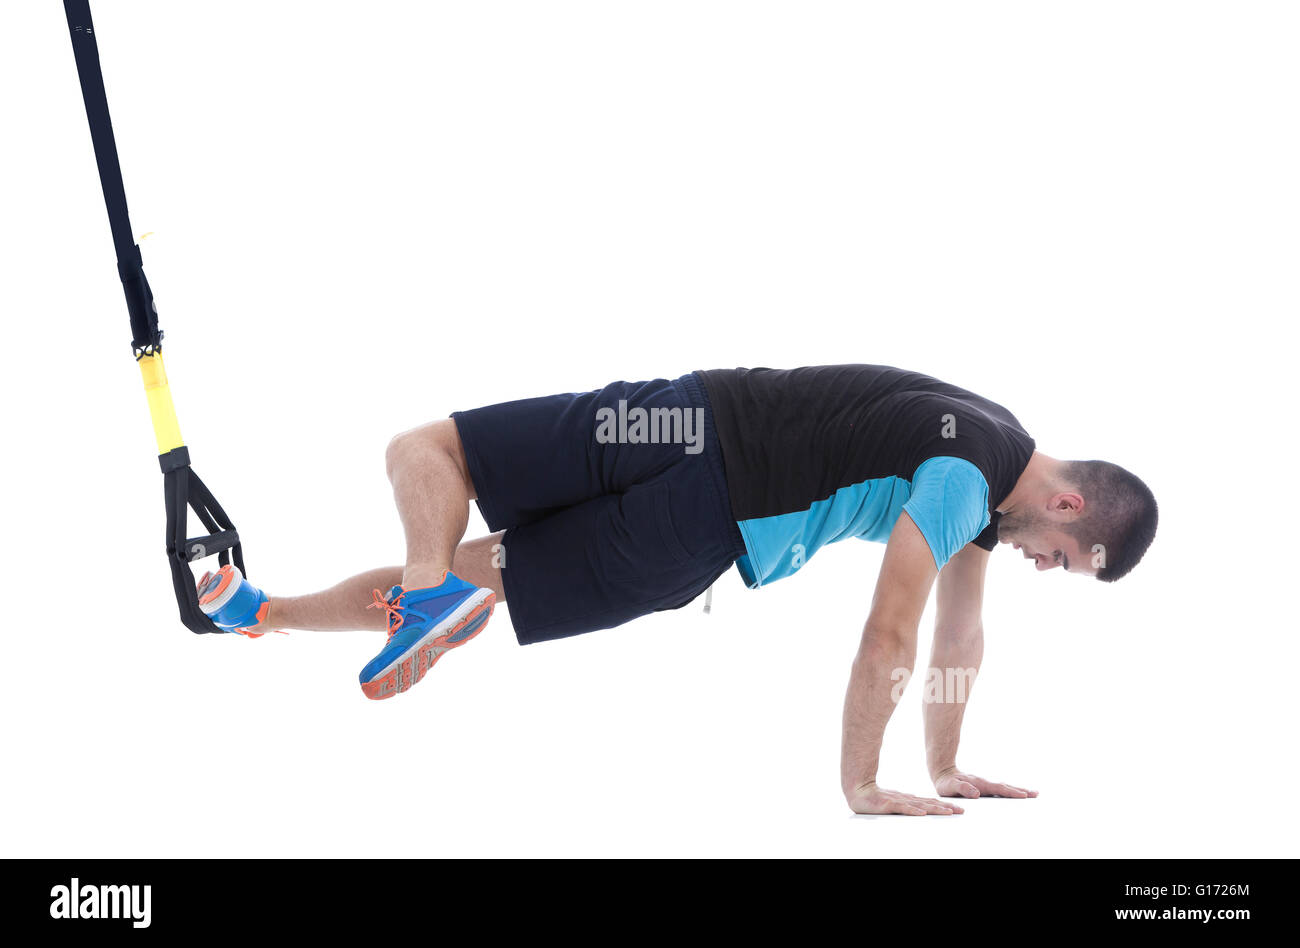 Athletic trainer on functional loops for training isolated on white background. Stock Photo